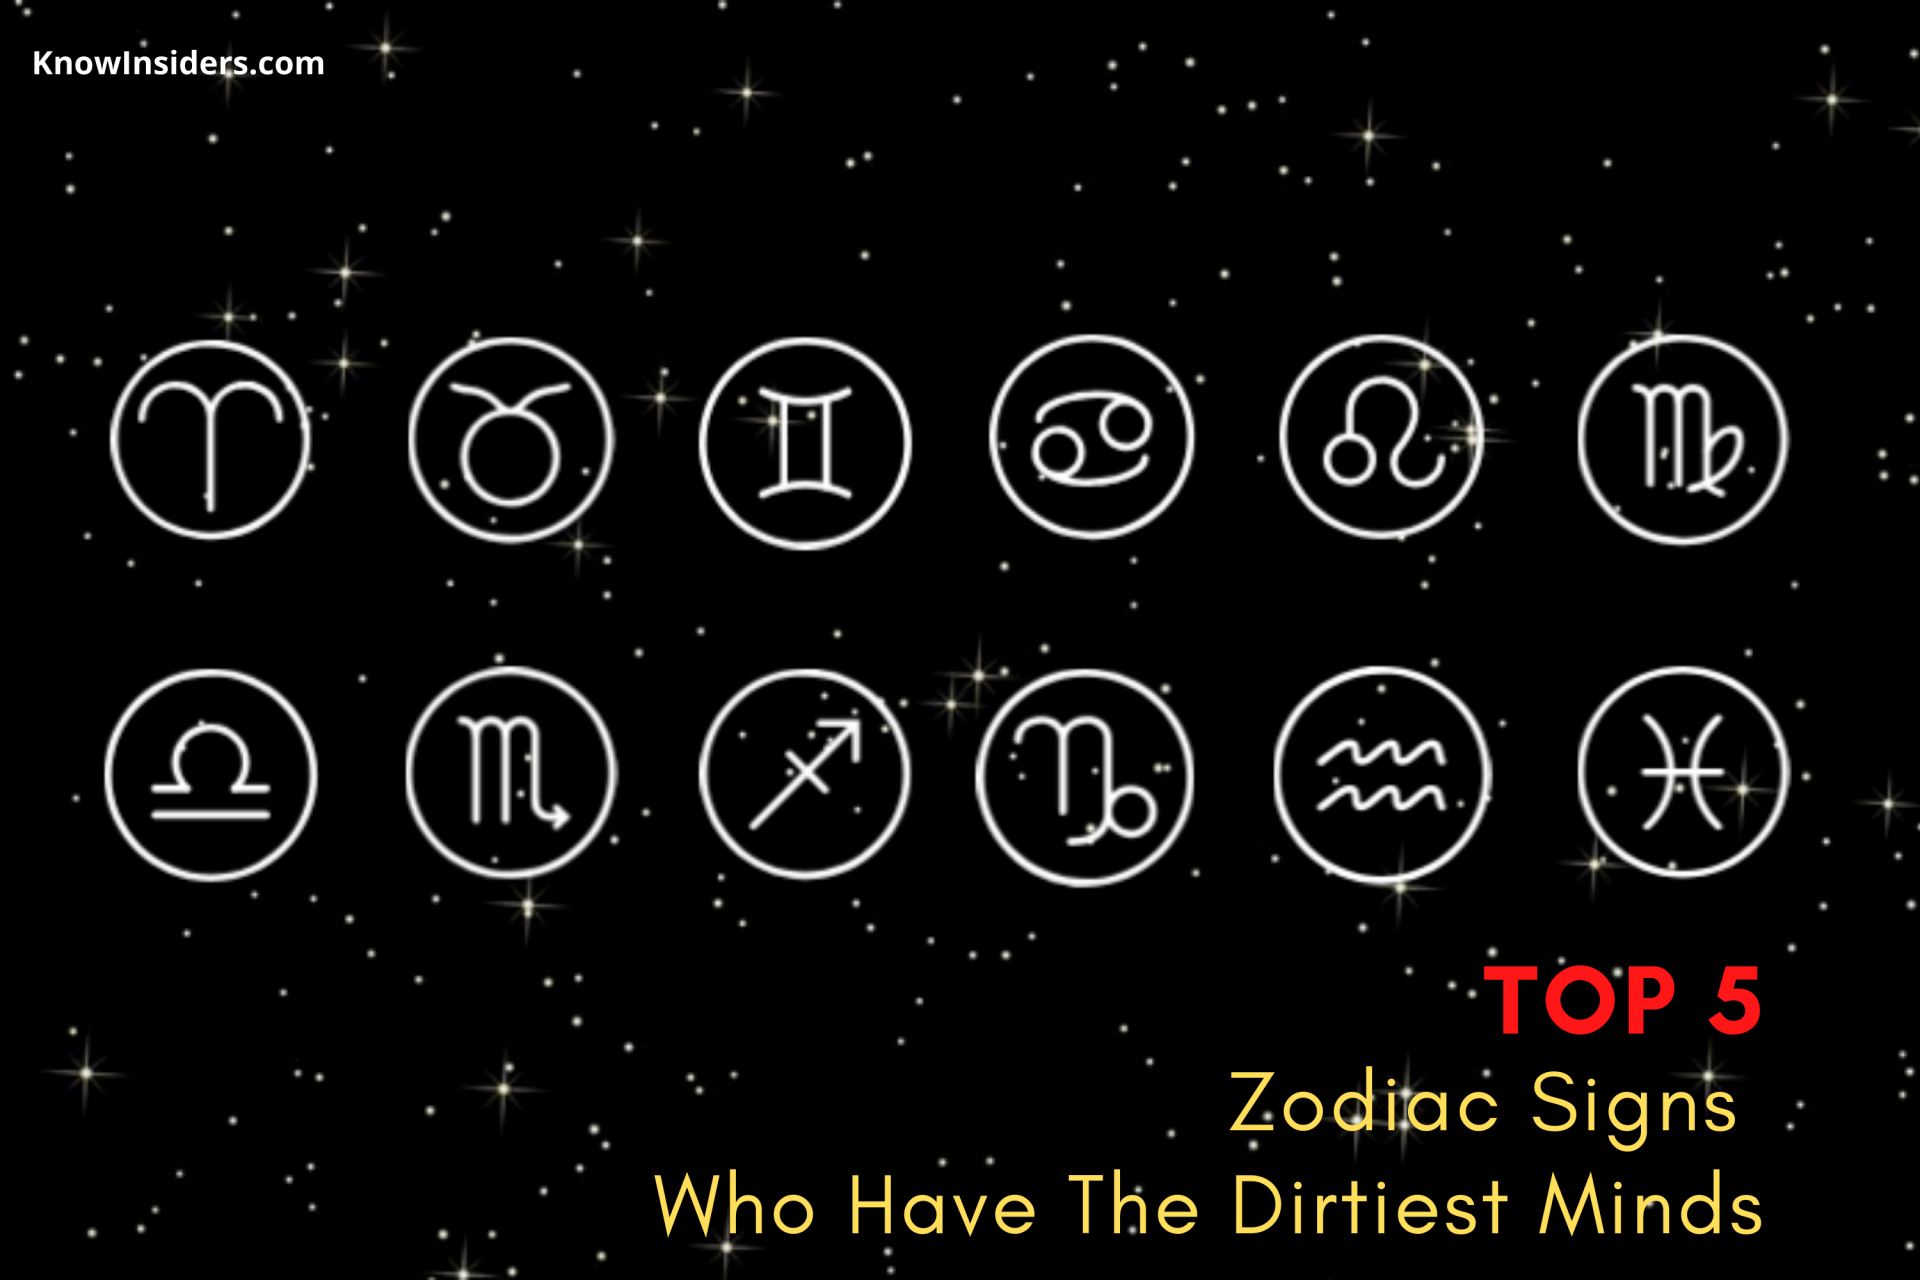 Top 5 Pervert Zodiac Signs Who Have The Dirtiest Minds